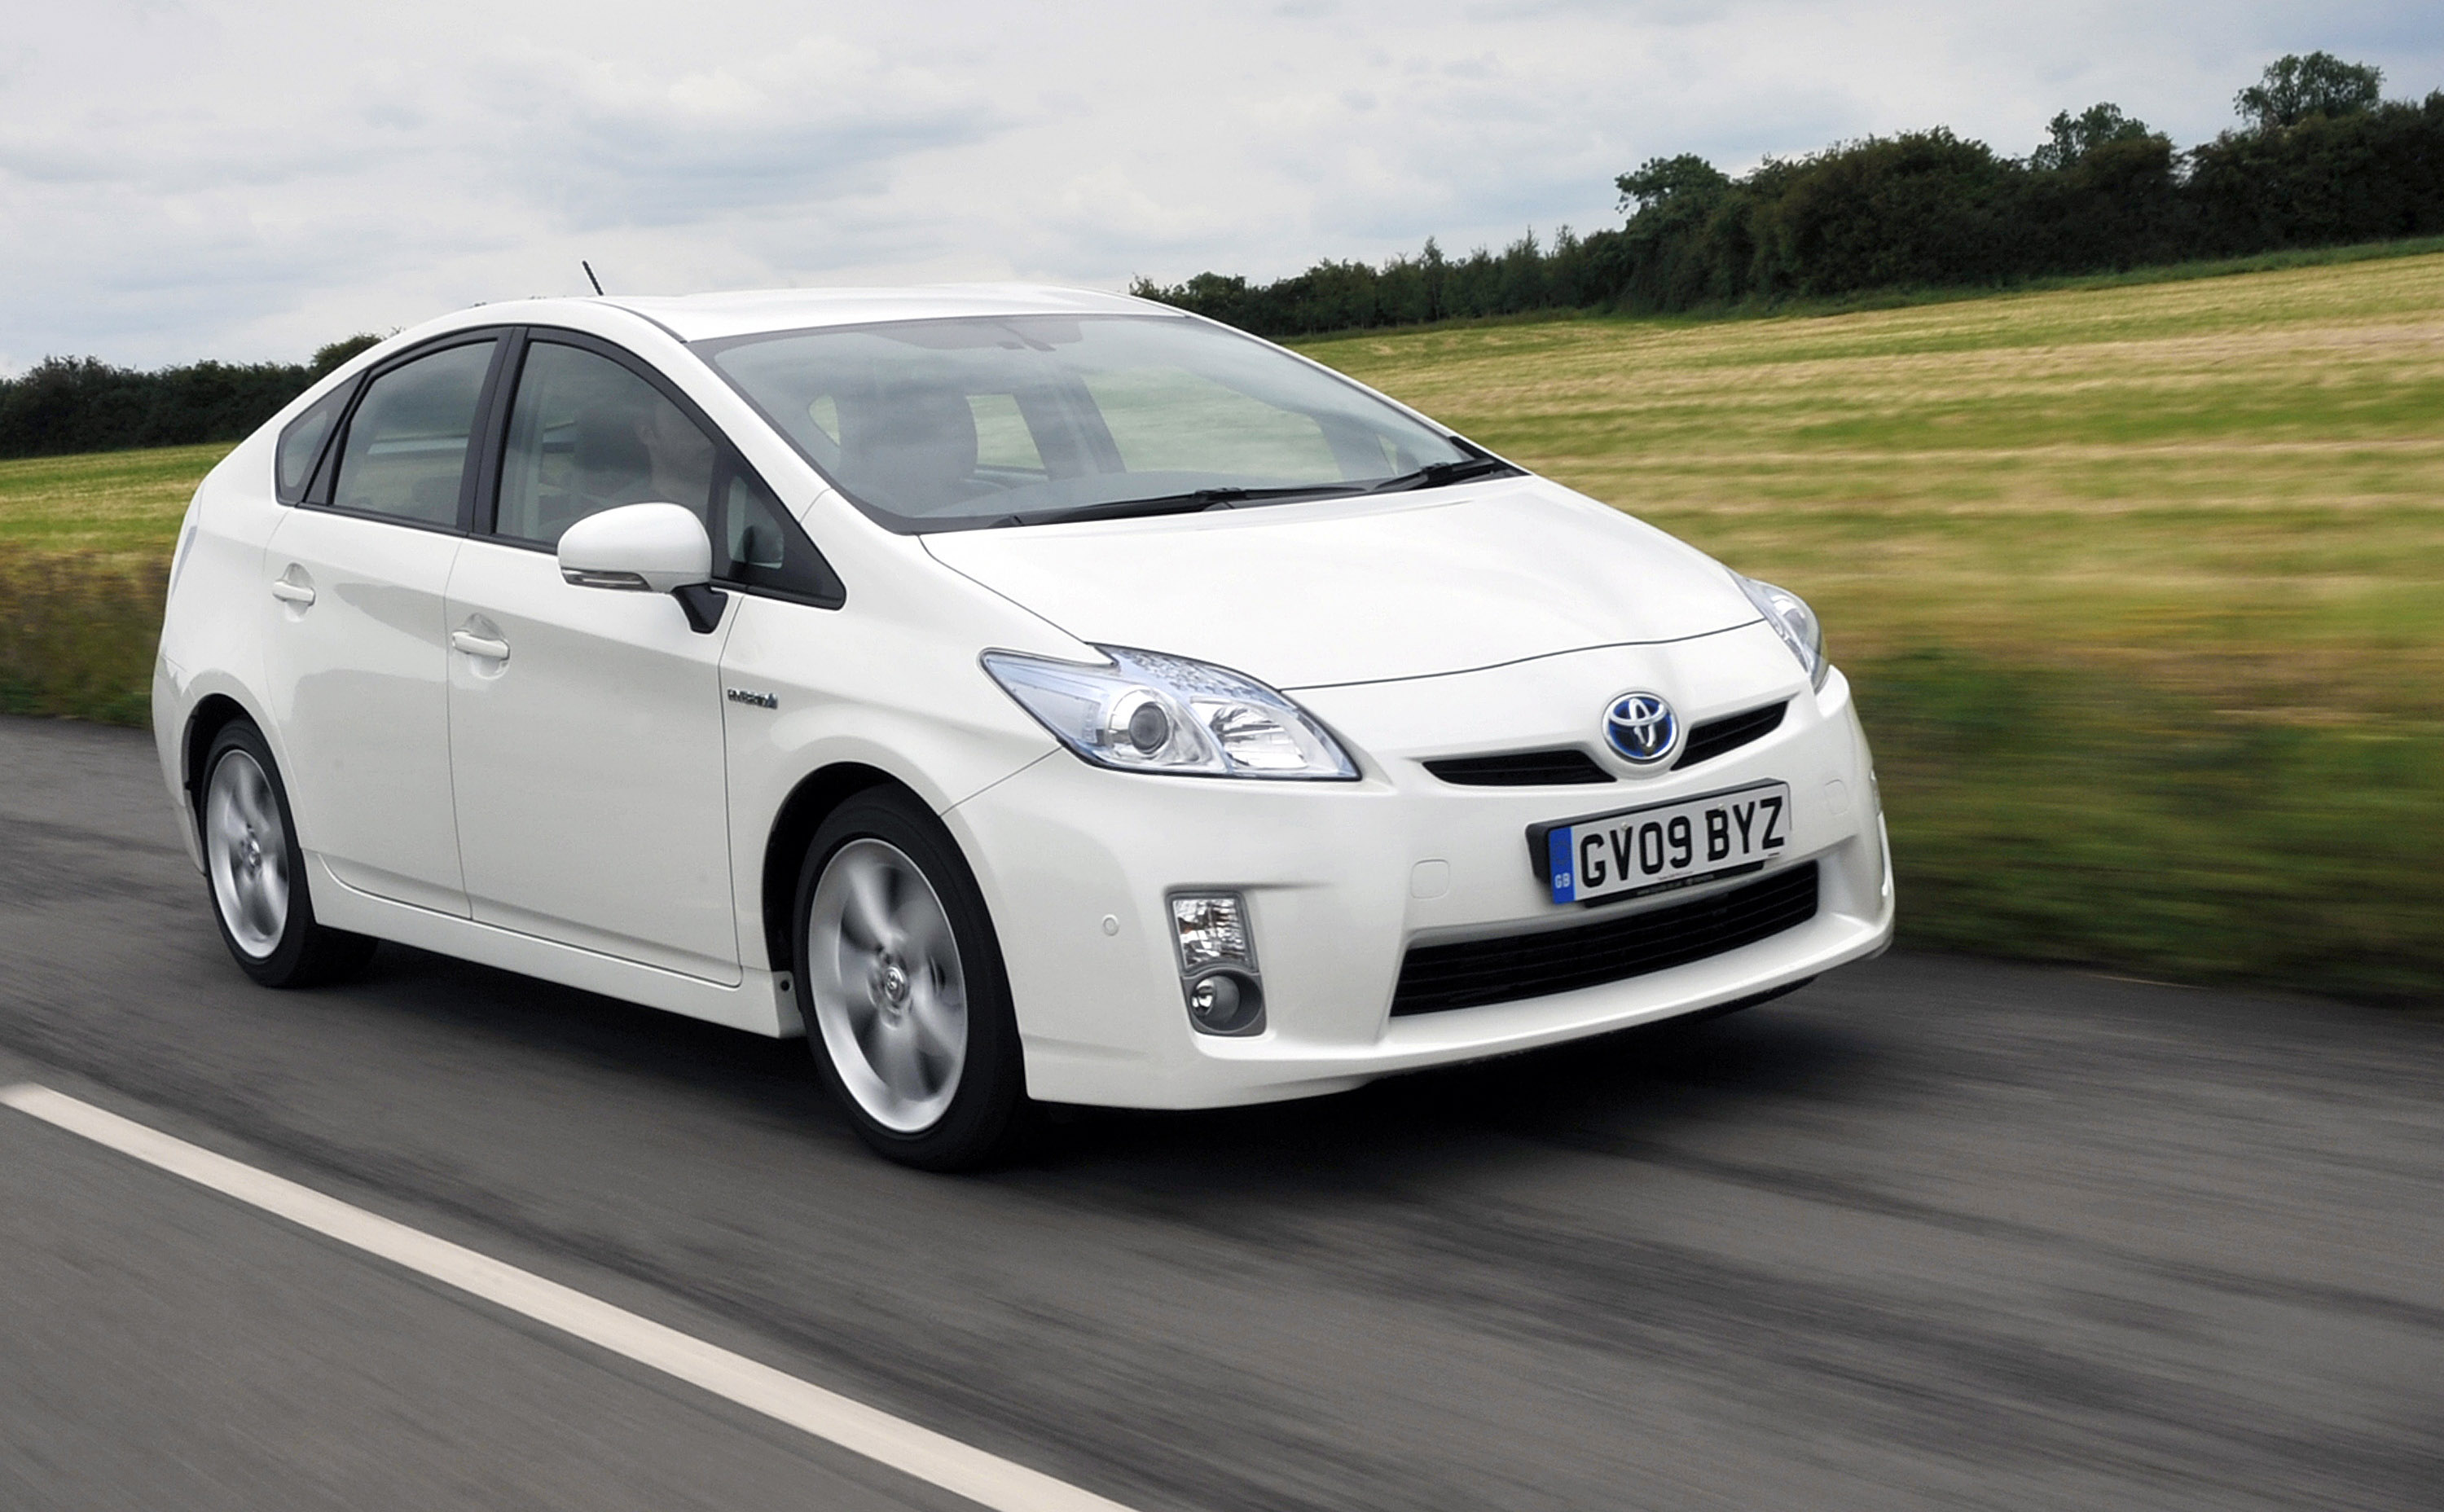 toyota prius benefits from safety pack option. Black Bedroom Furniture Sets. Home Design Ideas